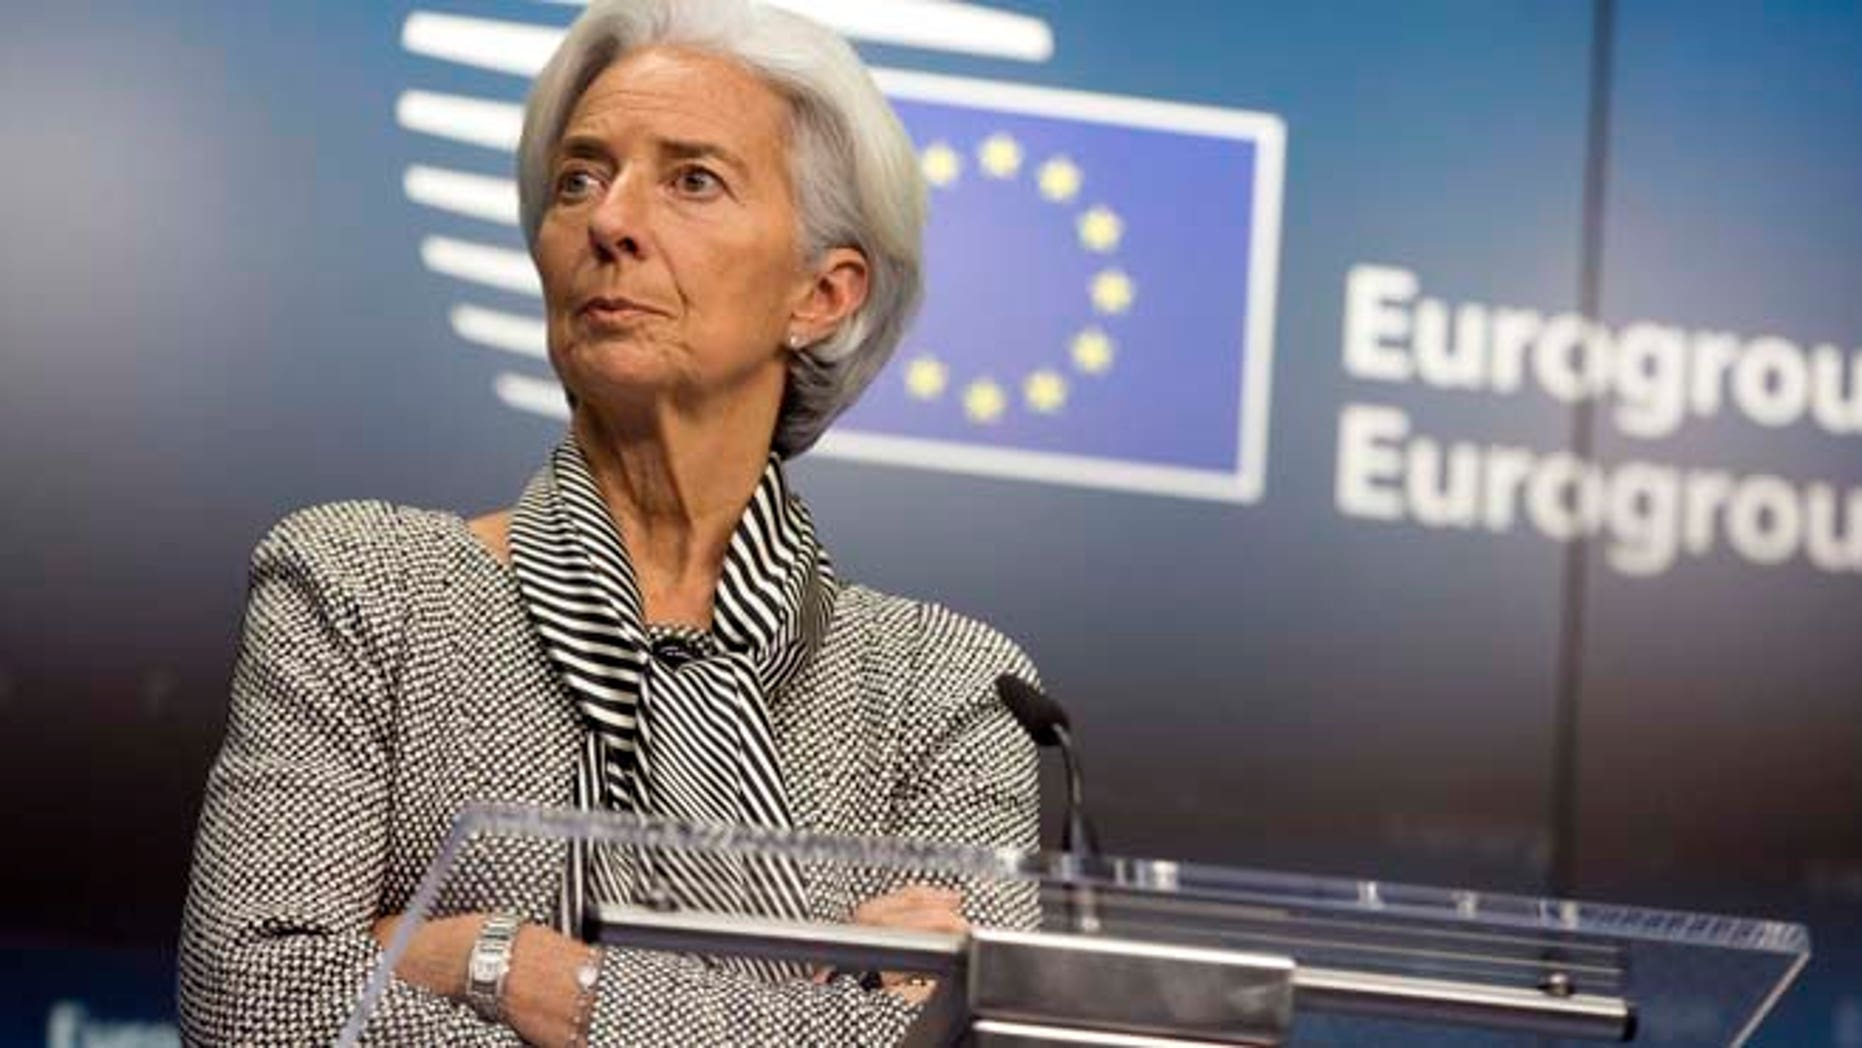 Feb. 20, 2015: Managing Director of the International Monetary Fund Christine Lagarde waits for the start of a media conference after a meeting of eurogroup finance ministers in Brussels. (AP)